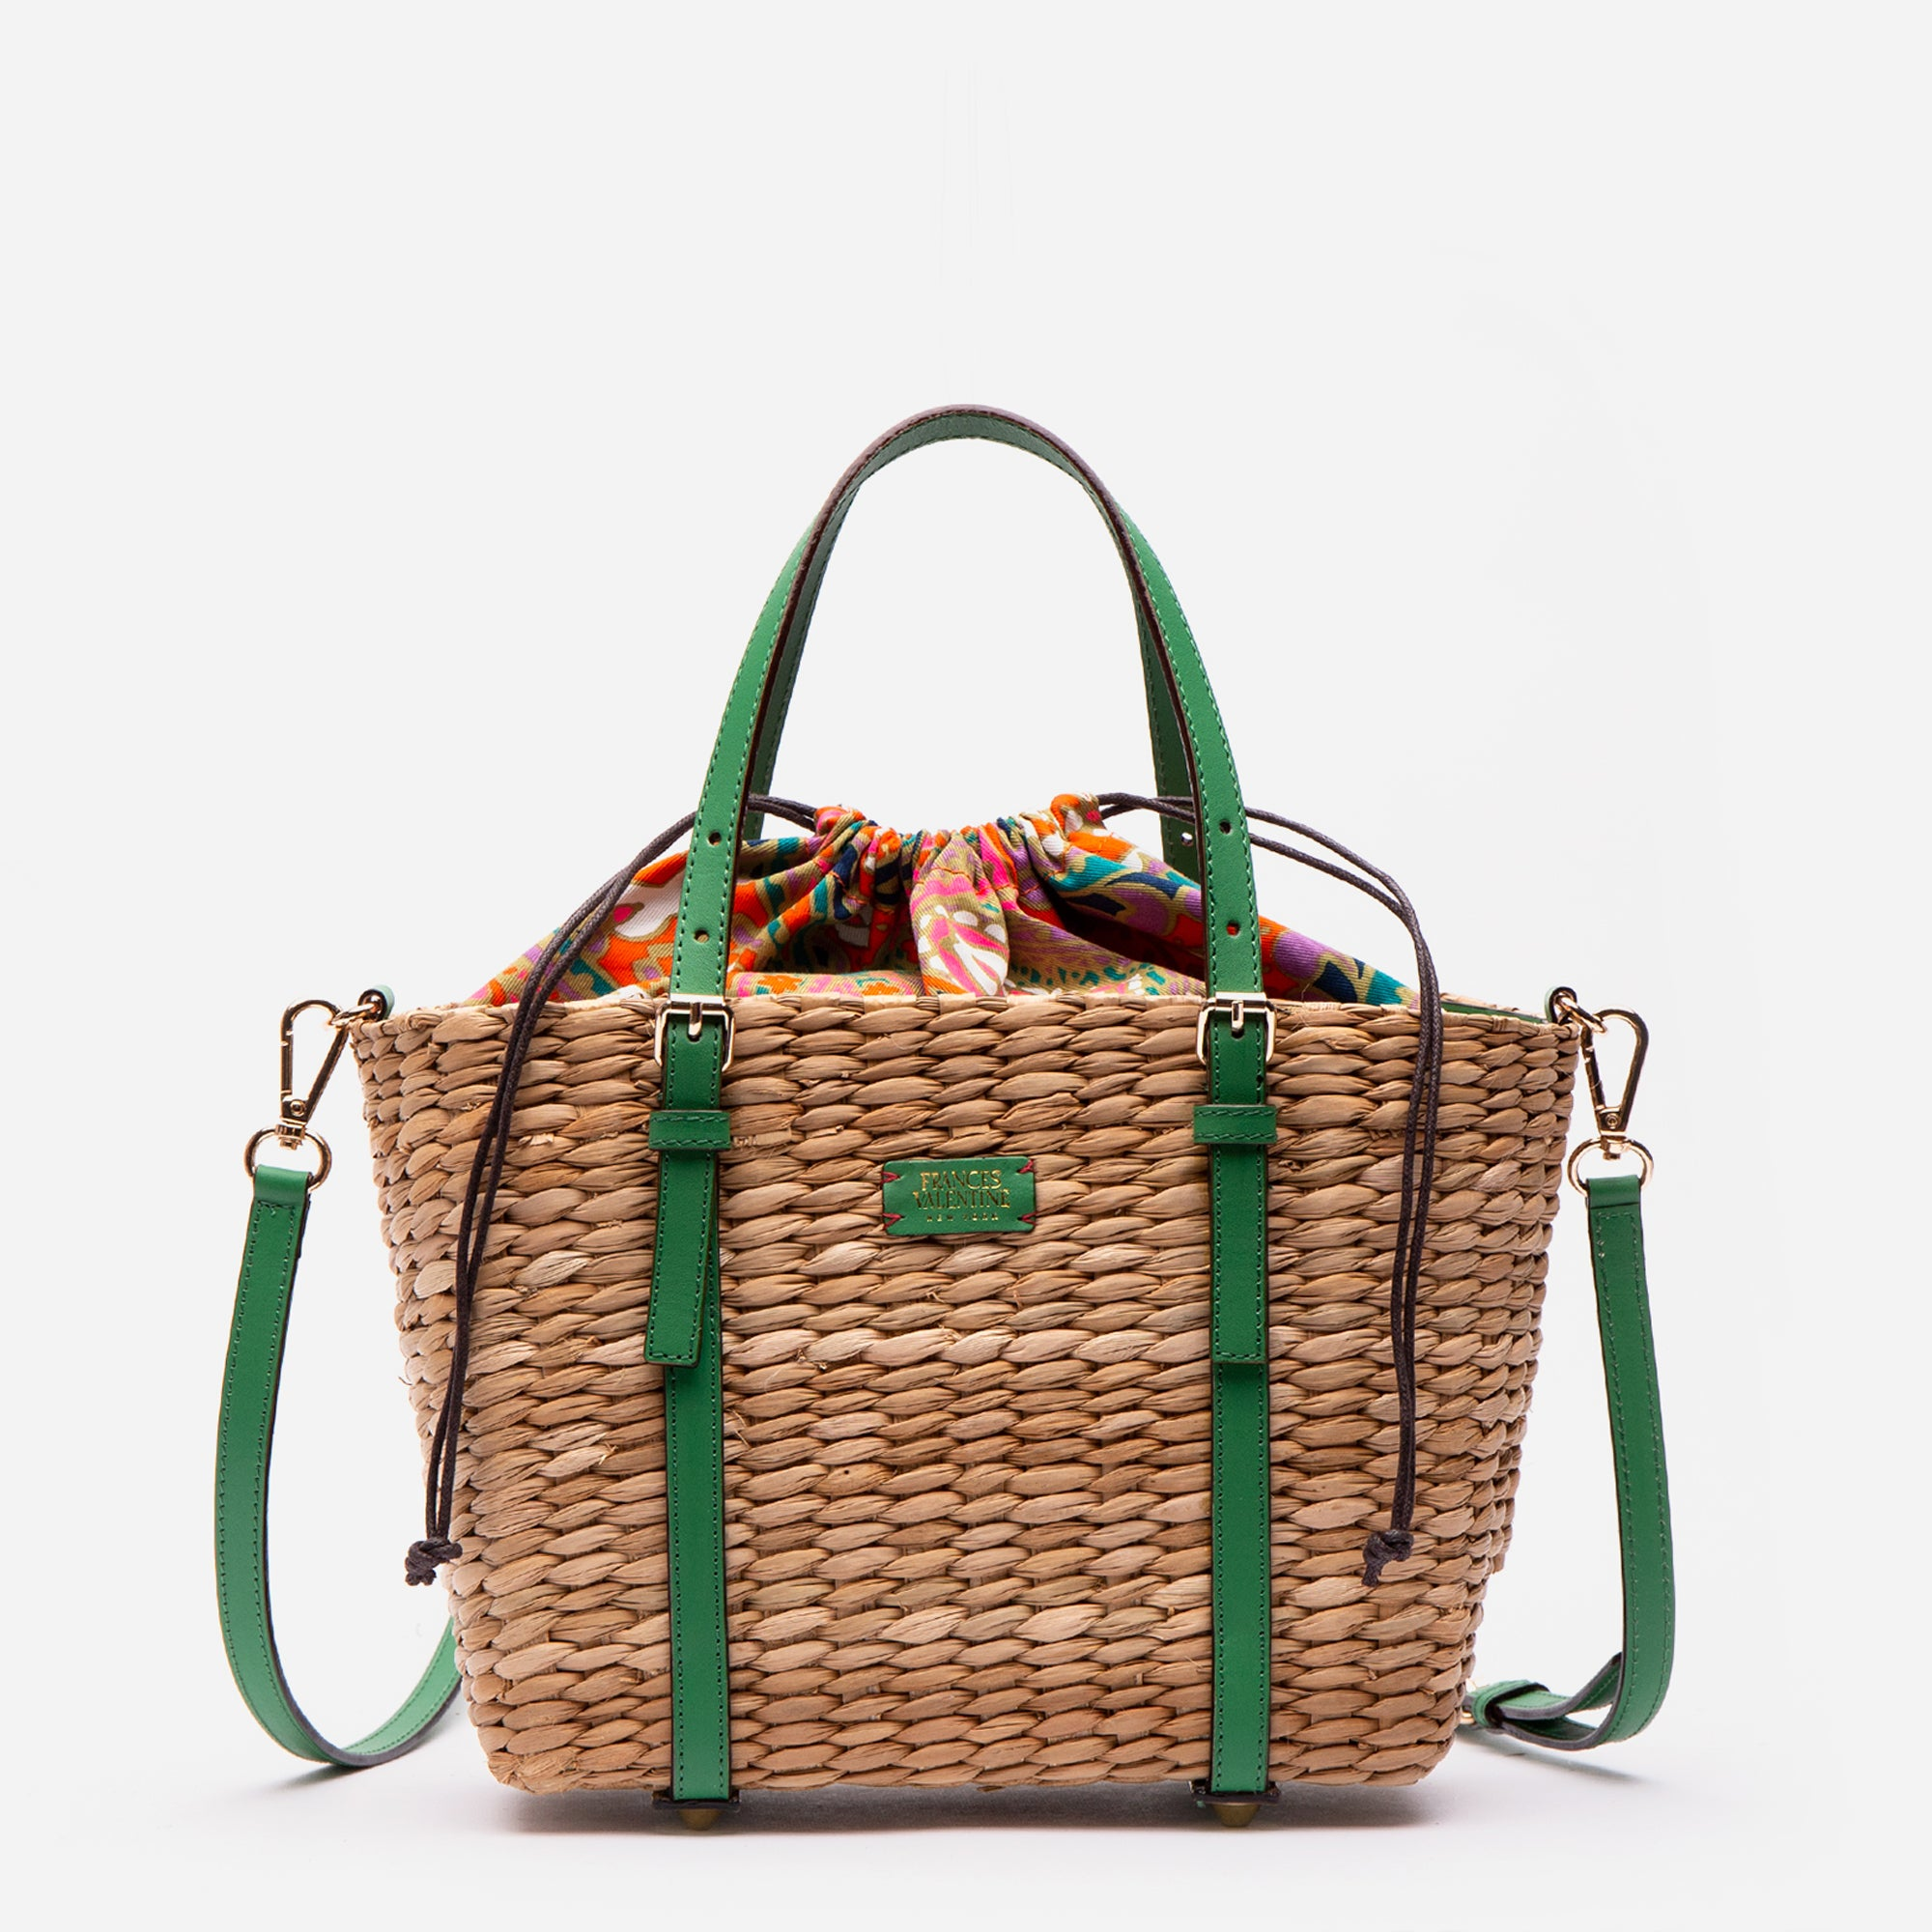 Small Woven Basket Tote Green Ray Vachetta